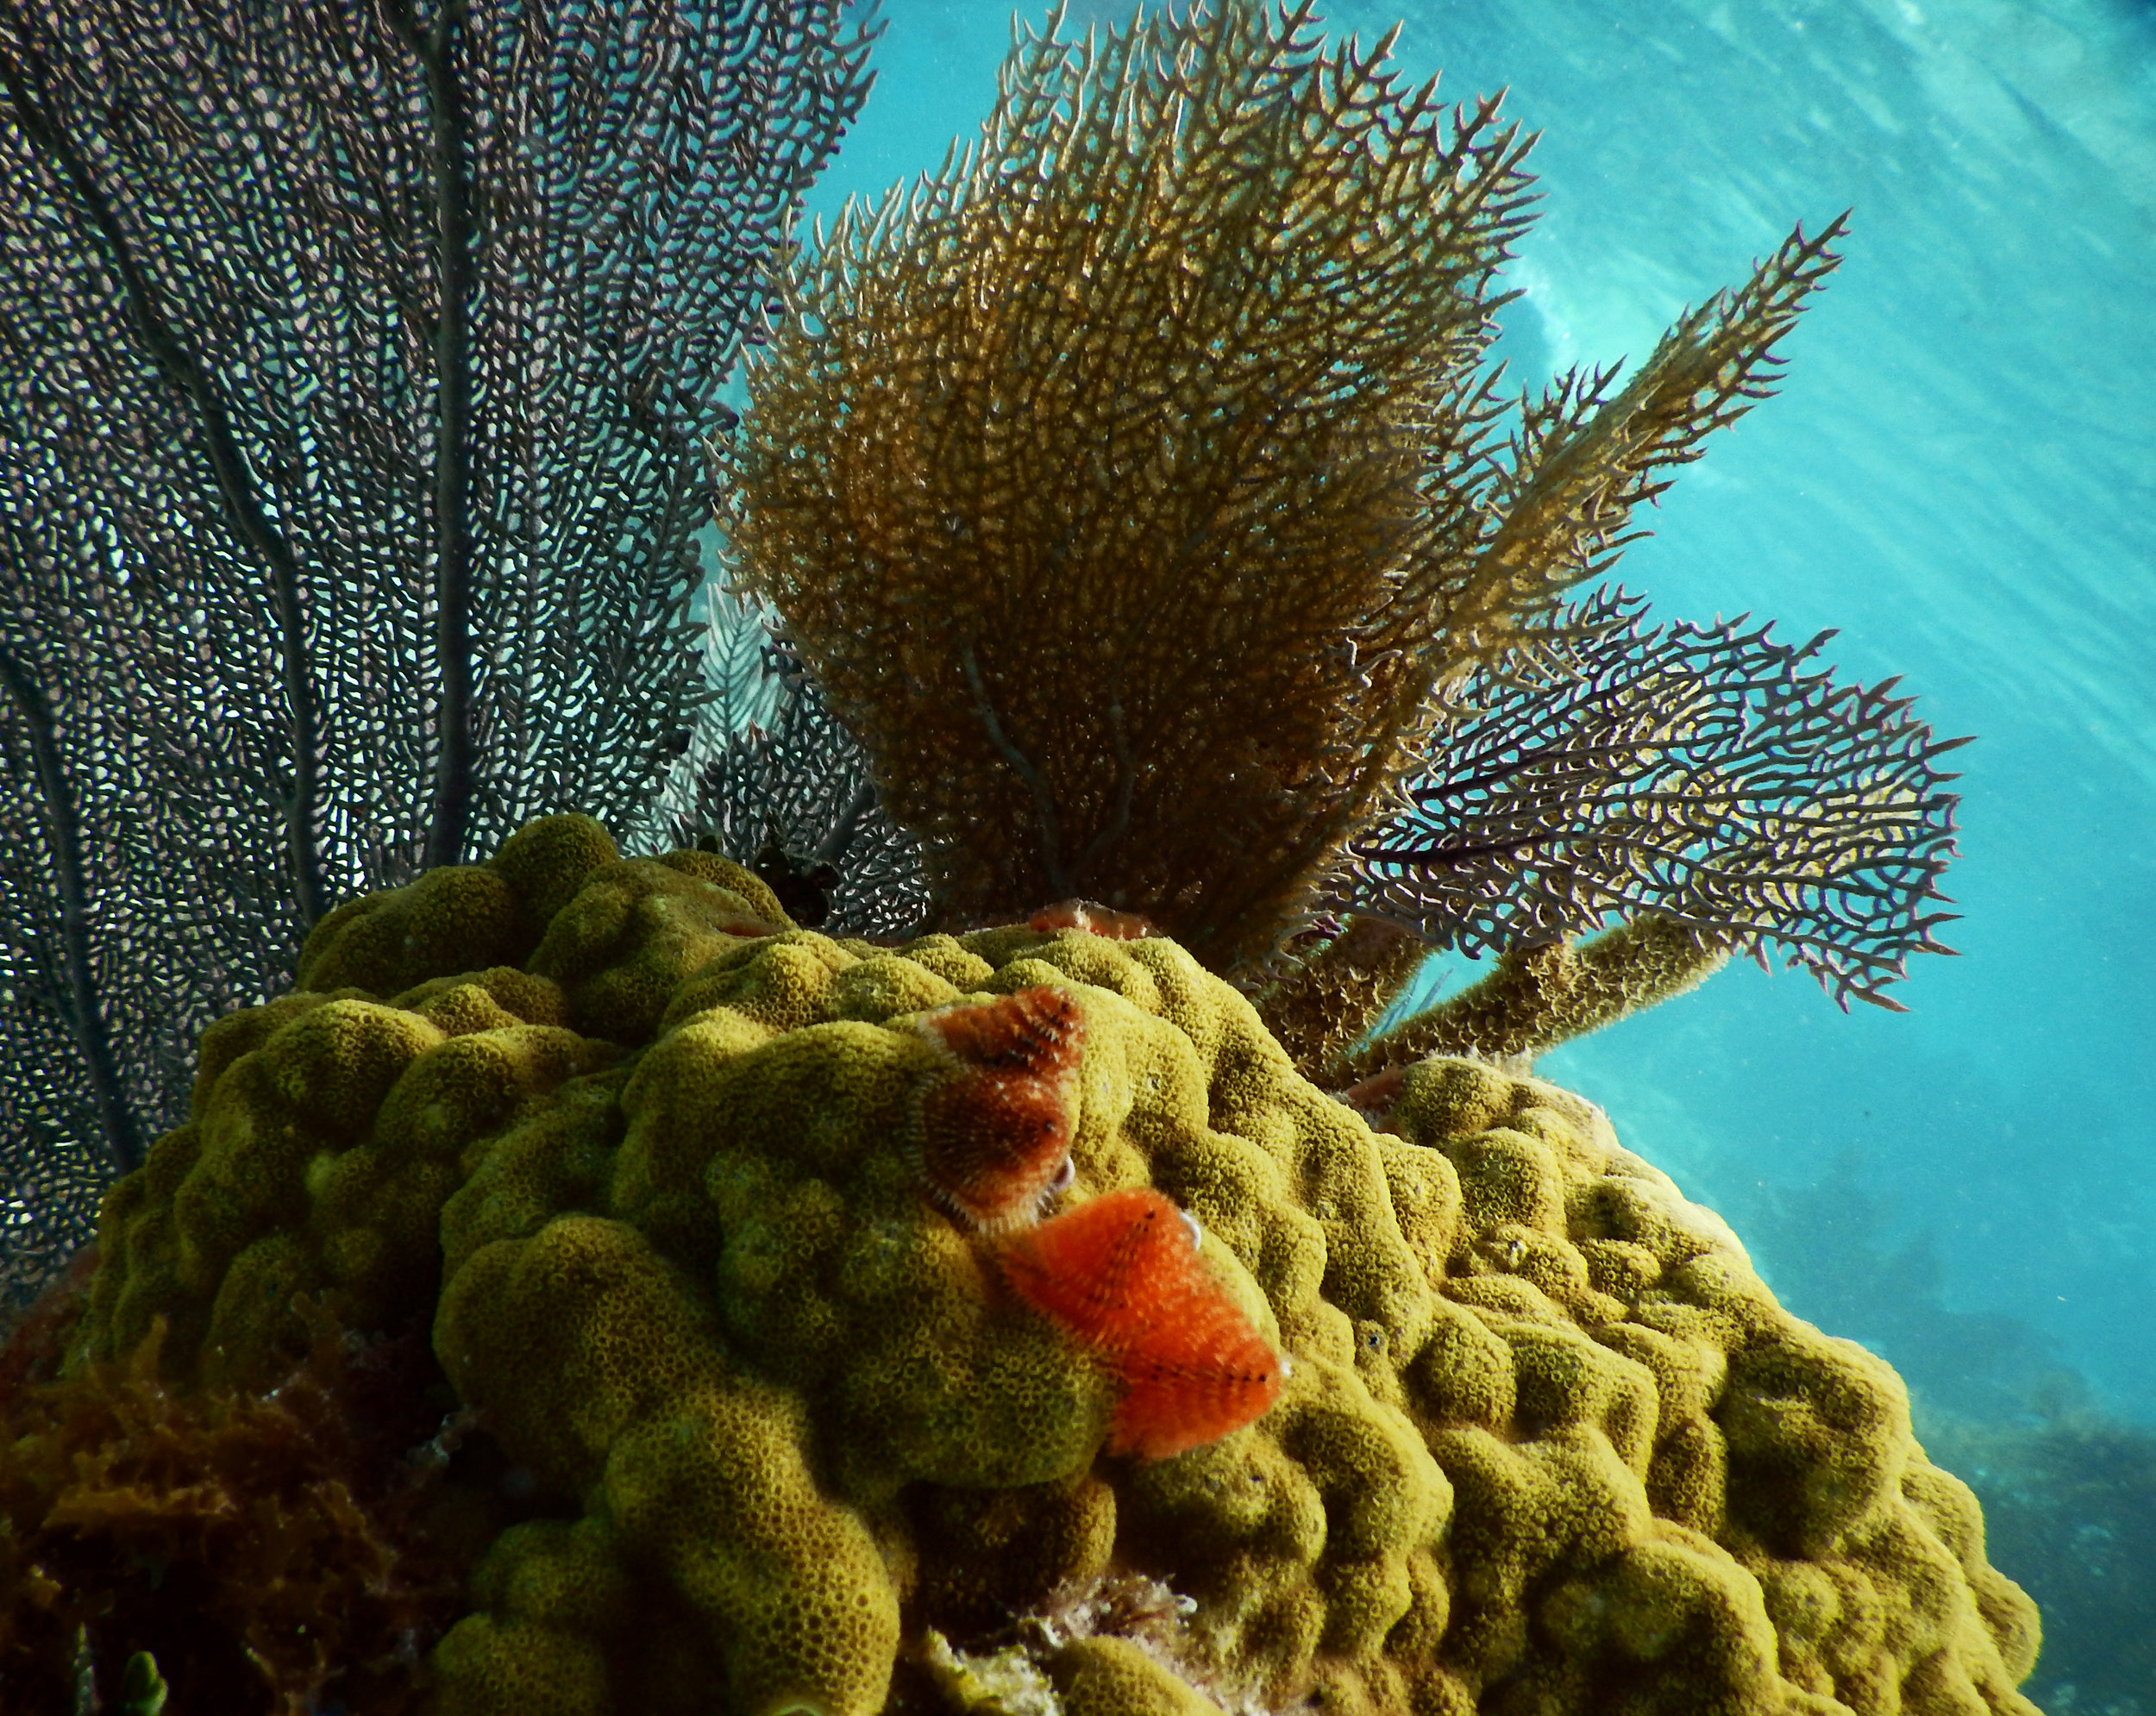 A  Porites astreoides  colony adorned with Christmas tree worms and gorgonians in John Pennekamp Coral Reef State Park.